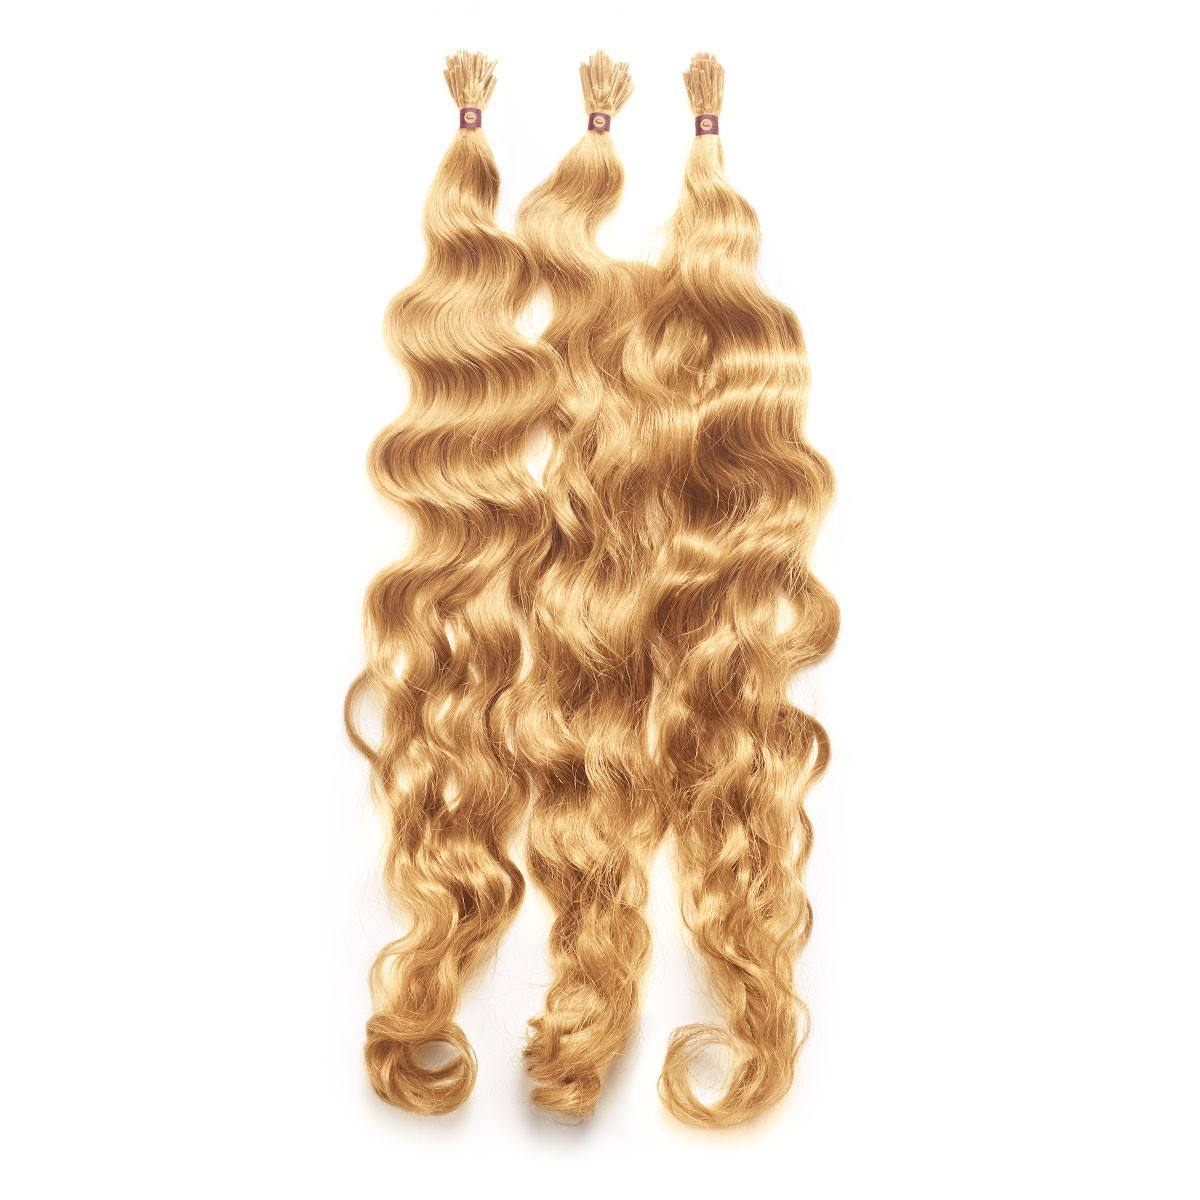 These I Tip Fusion Hair Extensions Are Made With Italian Keratin